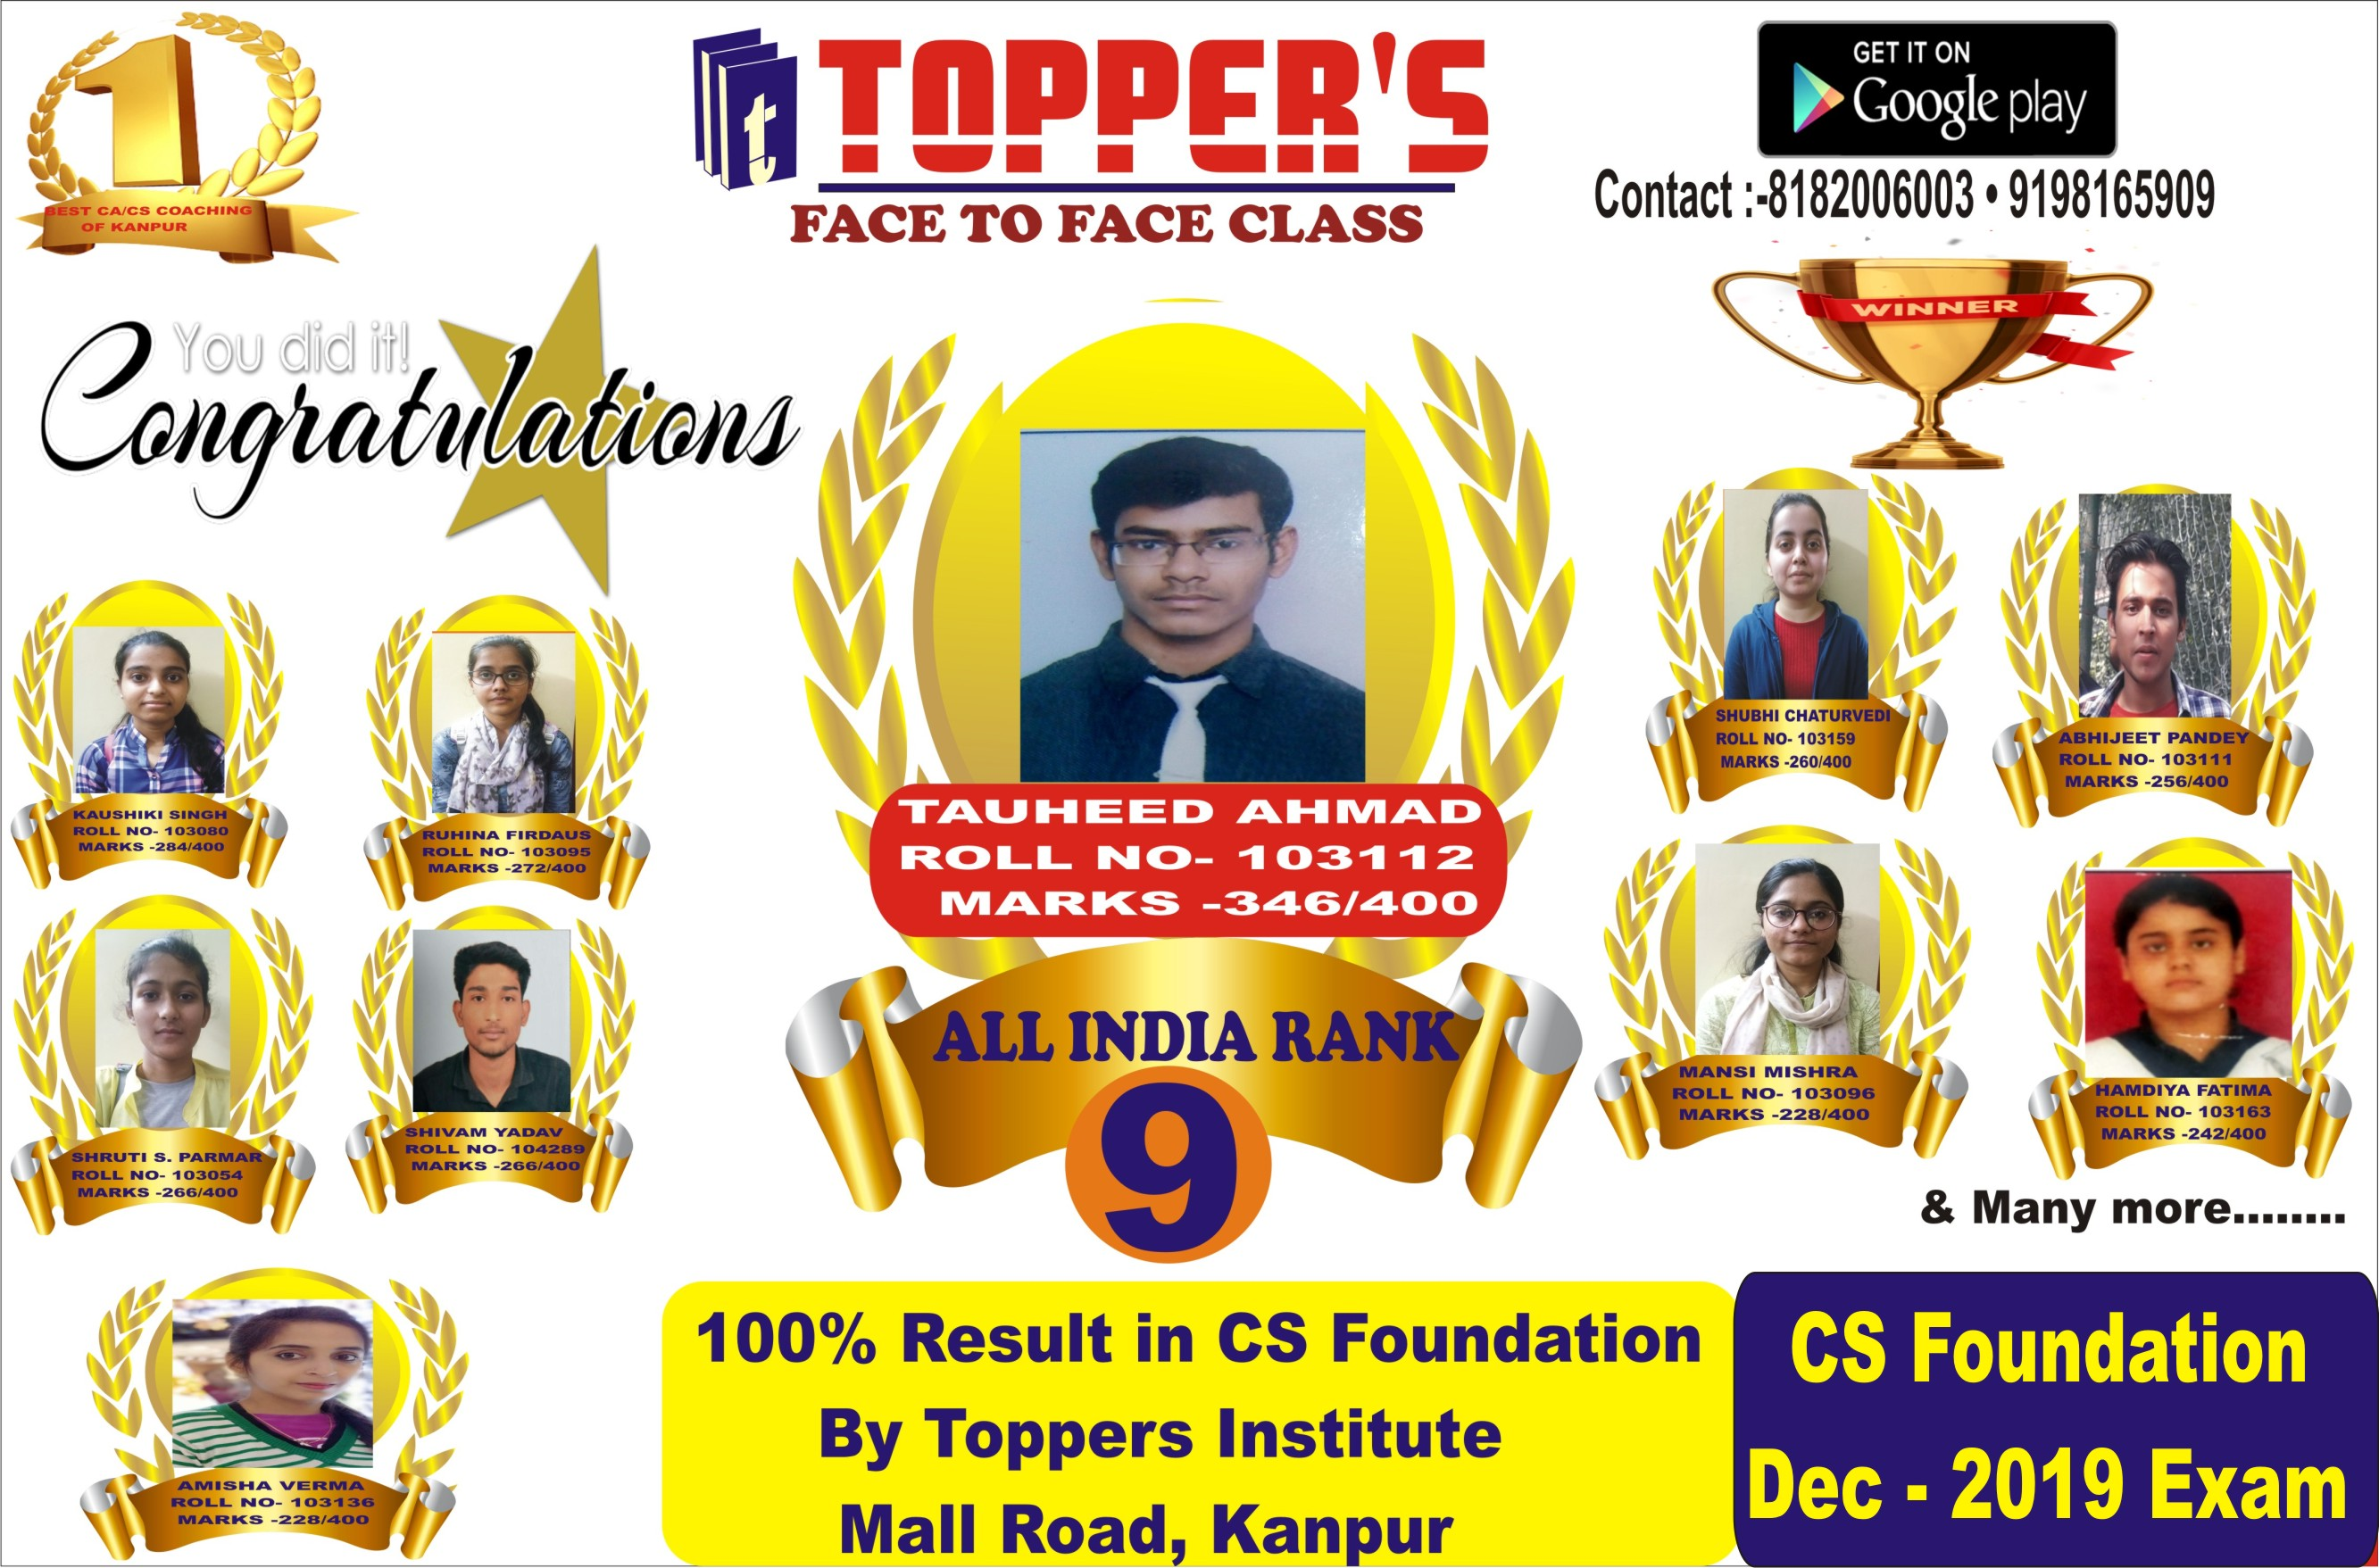 CS FOUNDATION DEC 2019 EXAM RESULT BY TOPPERS KANPUR